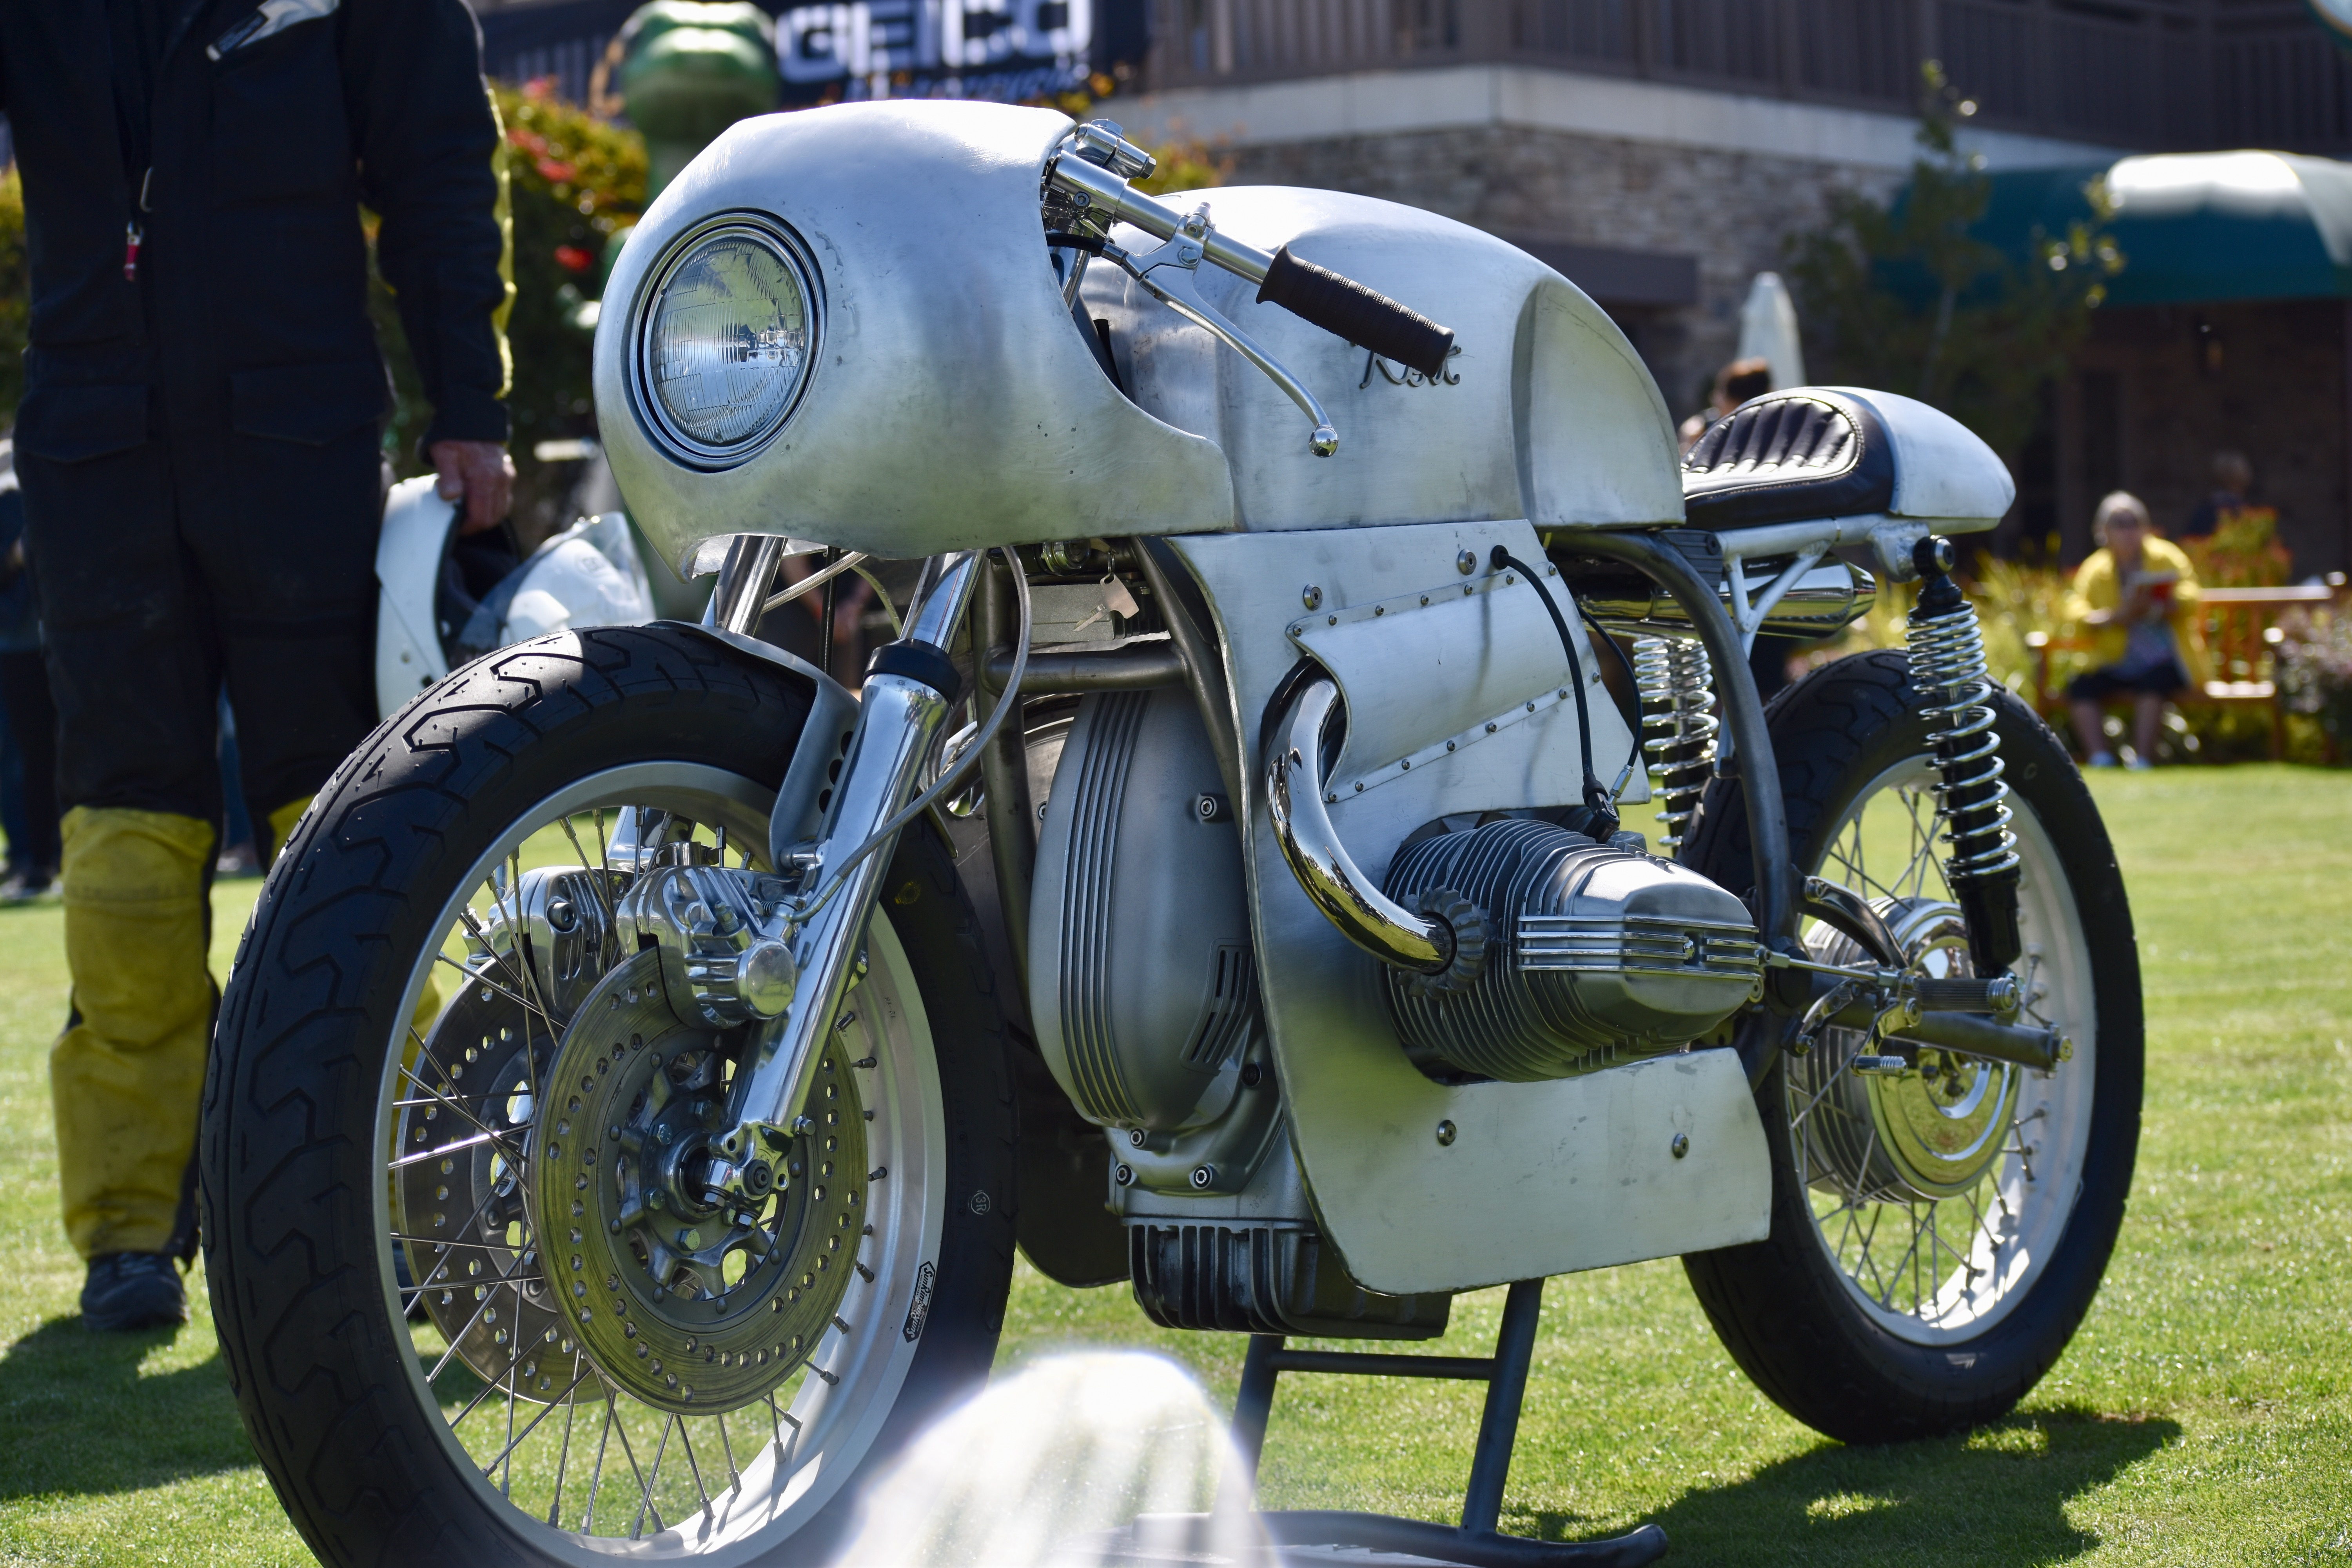 Quail Motorcycle, Quail Motorcycle Gathering features women who ride, ClassicCars.com Journal